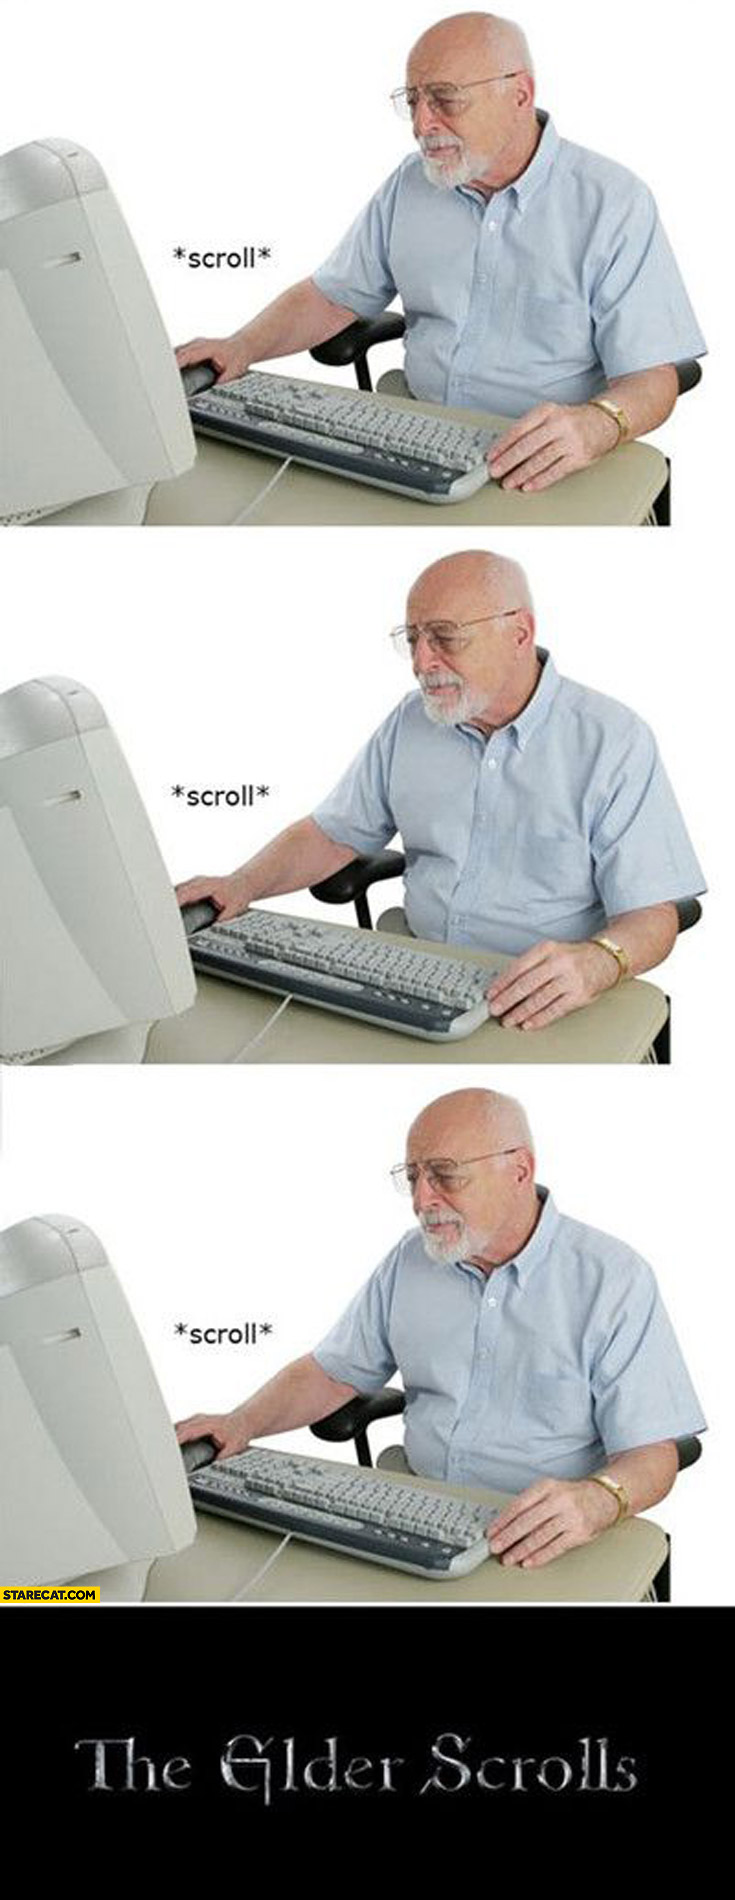 The Elder Scrolls old man scrolling